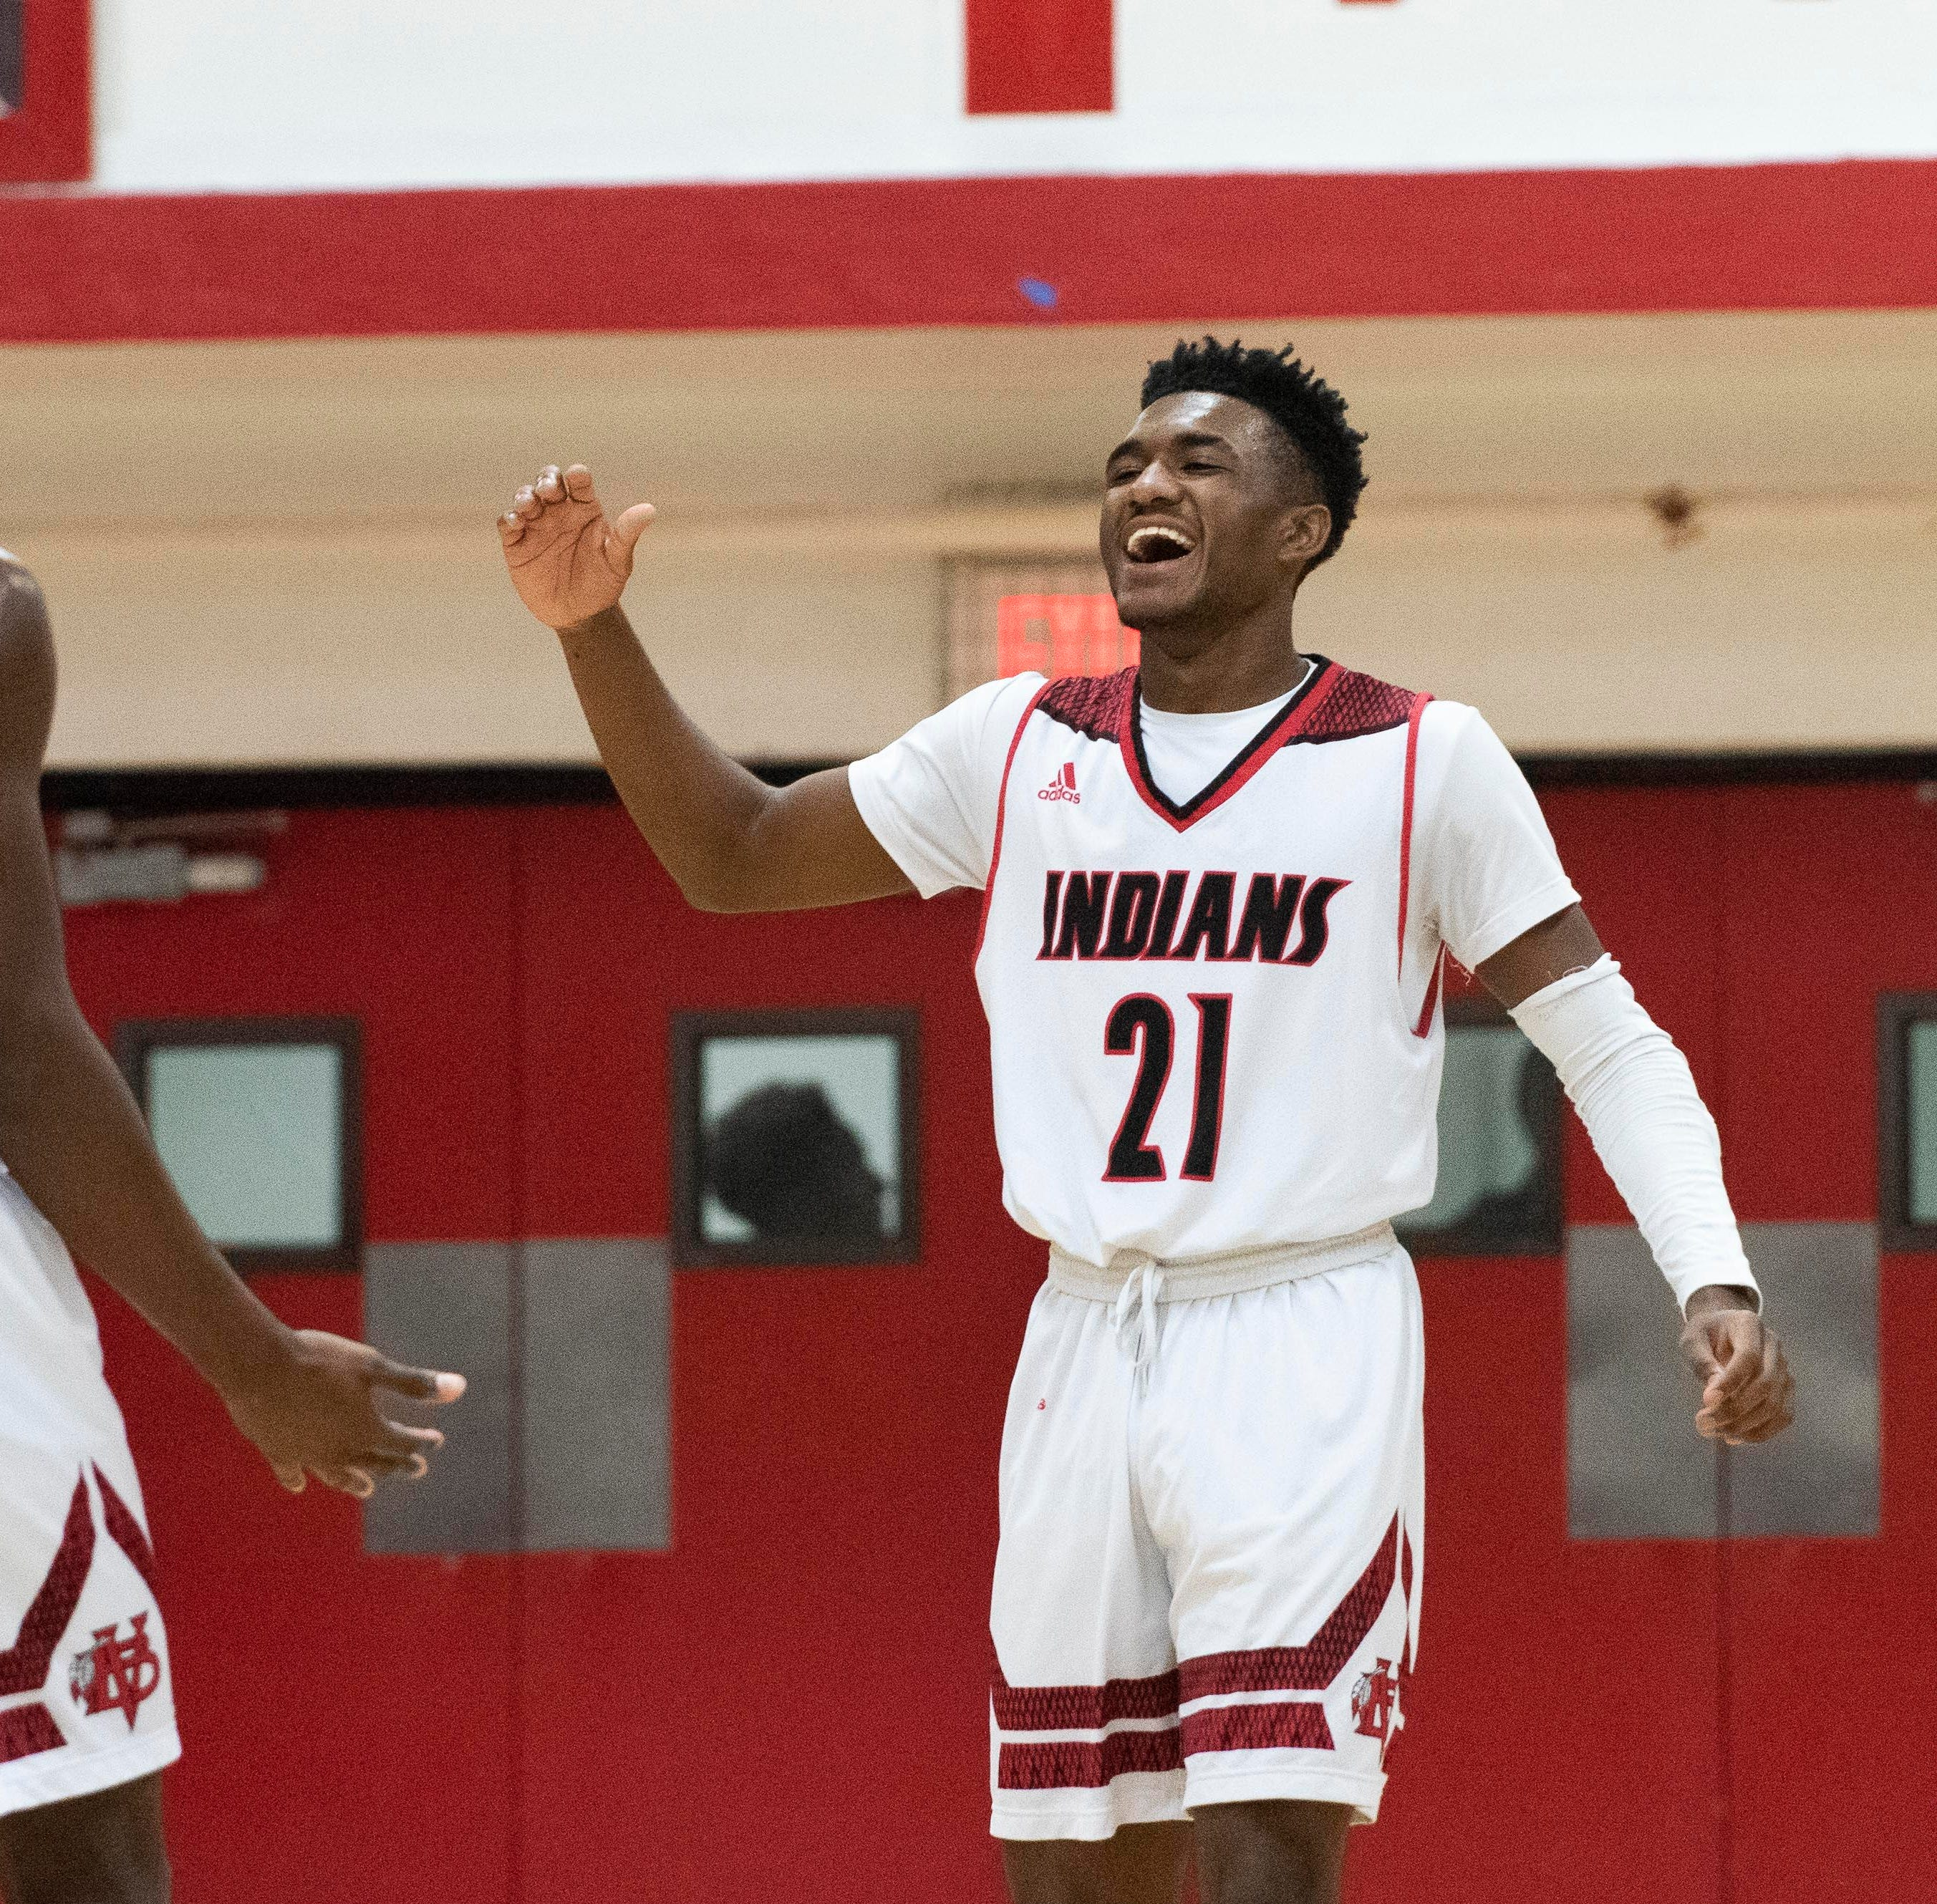 Javian Cuff heats up after halftime to lead Vero Beach boys basketball to district championship